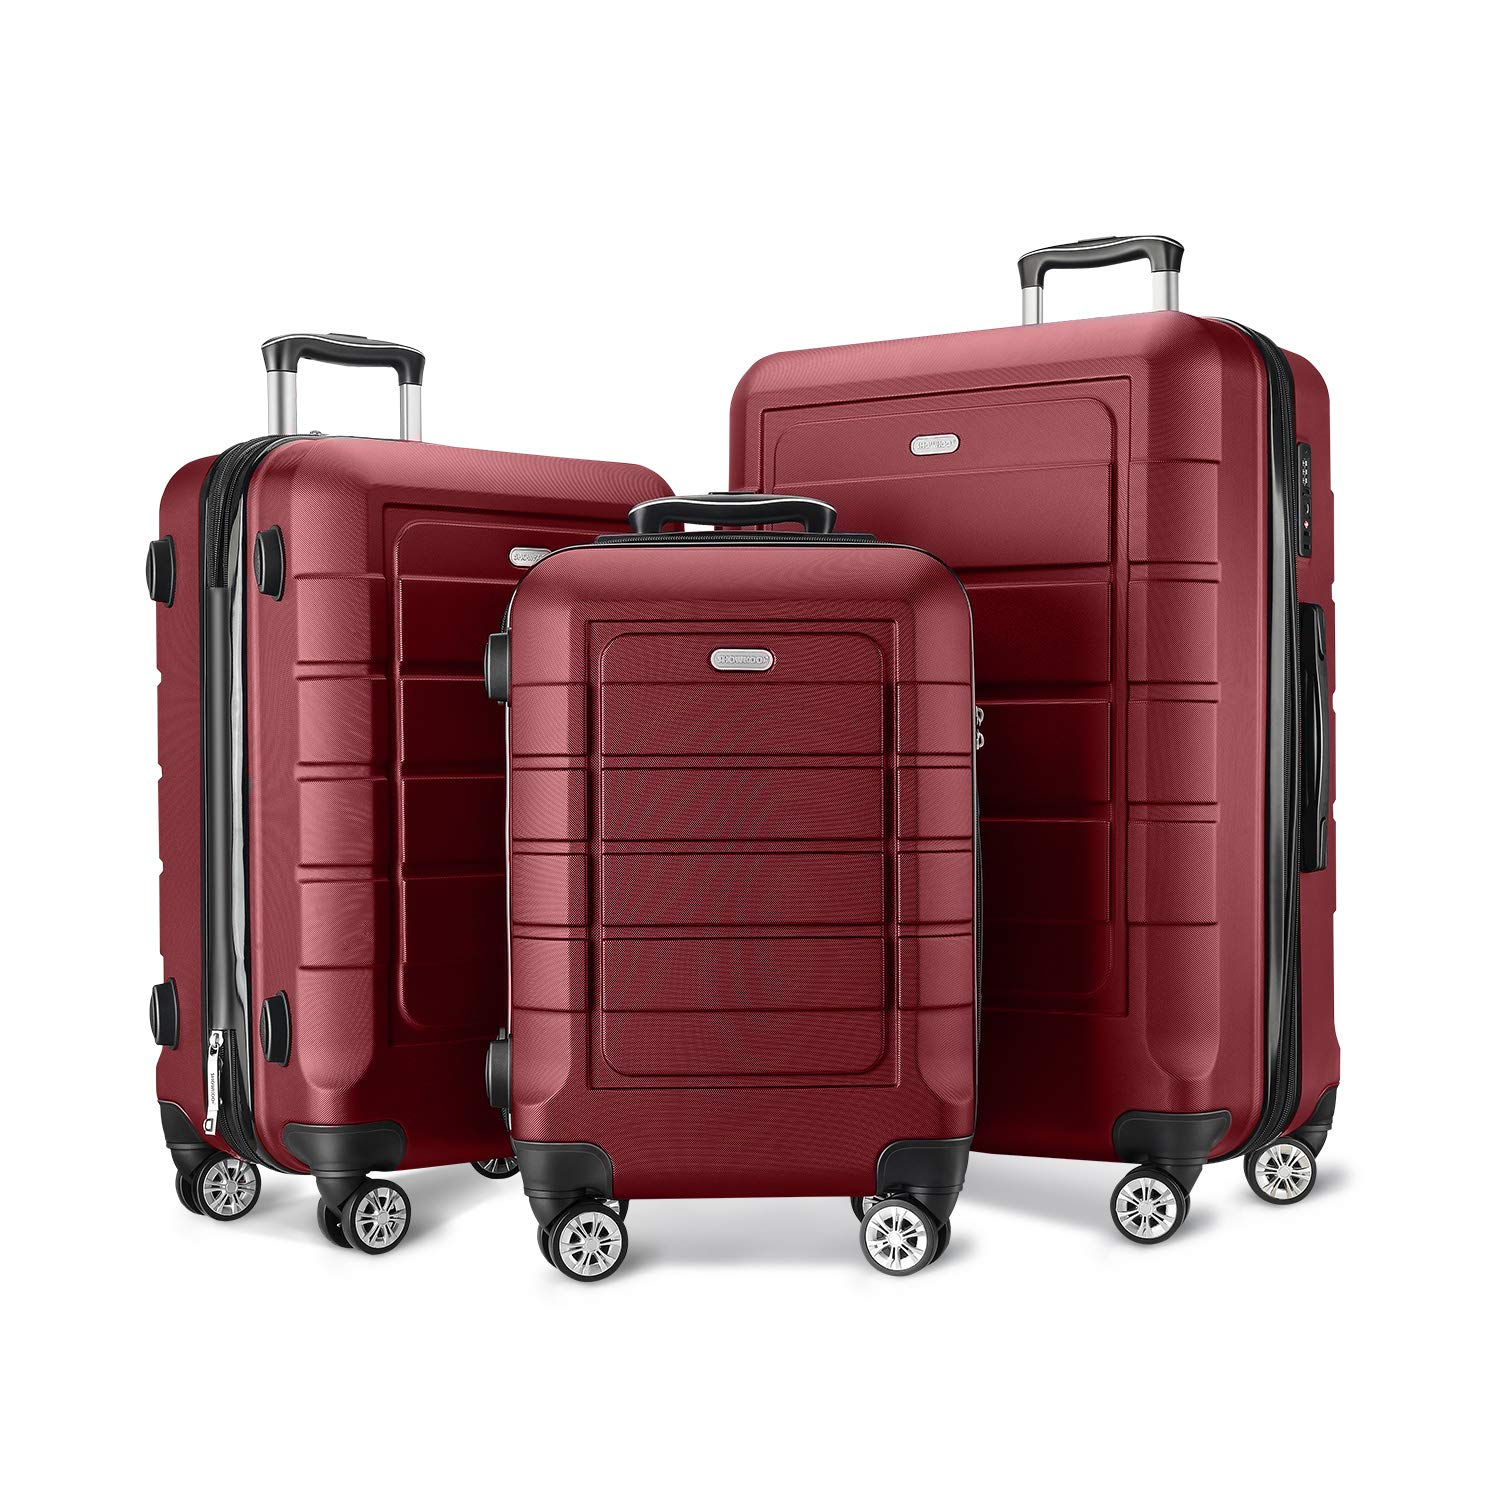 SHOWKOO Luggage Sets Expandable PC+ABS Durable Suitcase Double Wheels TSA Lock Red Wine by Showkoo